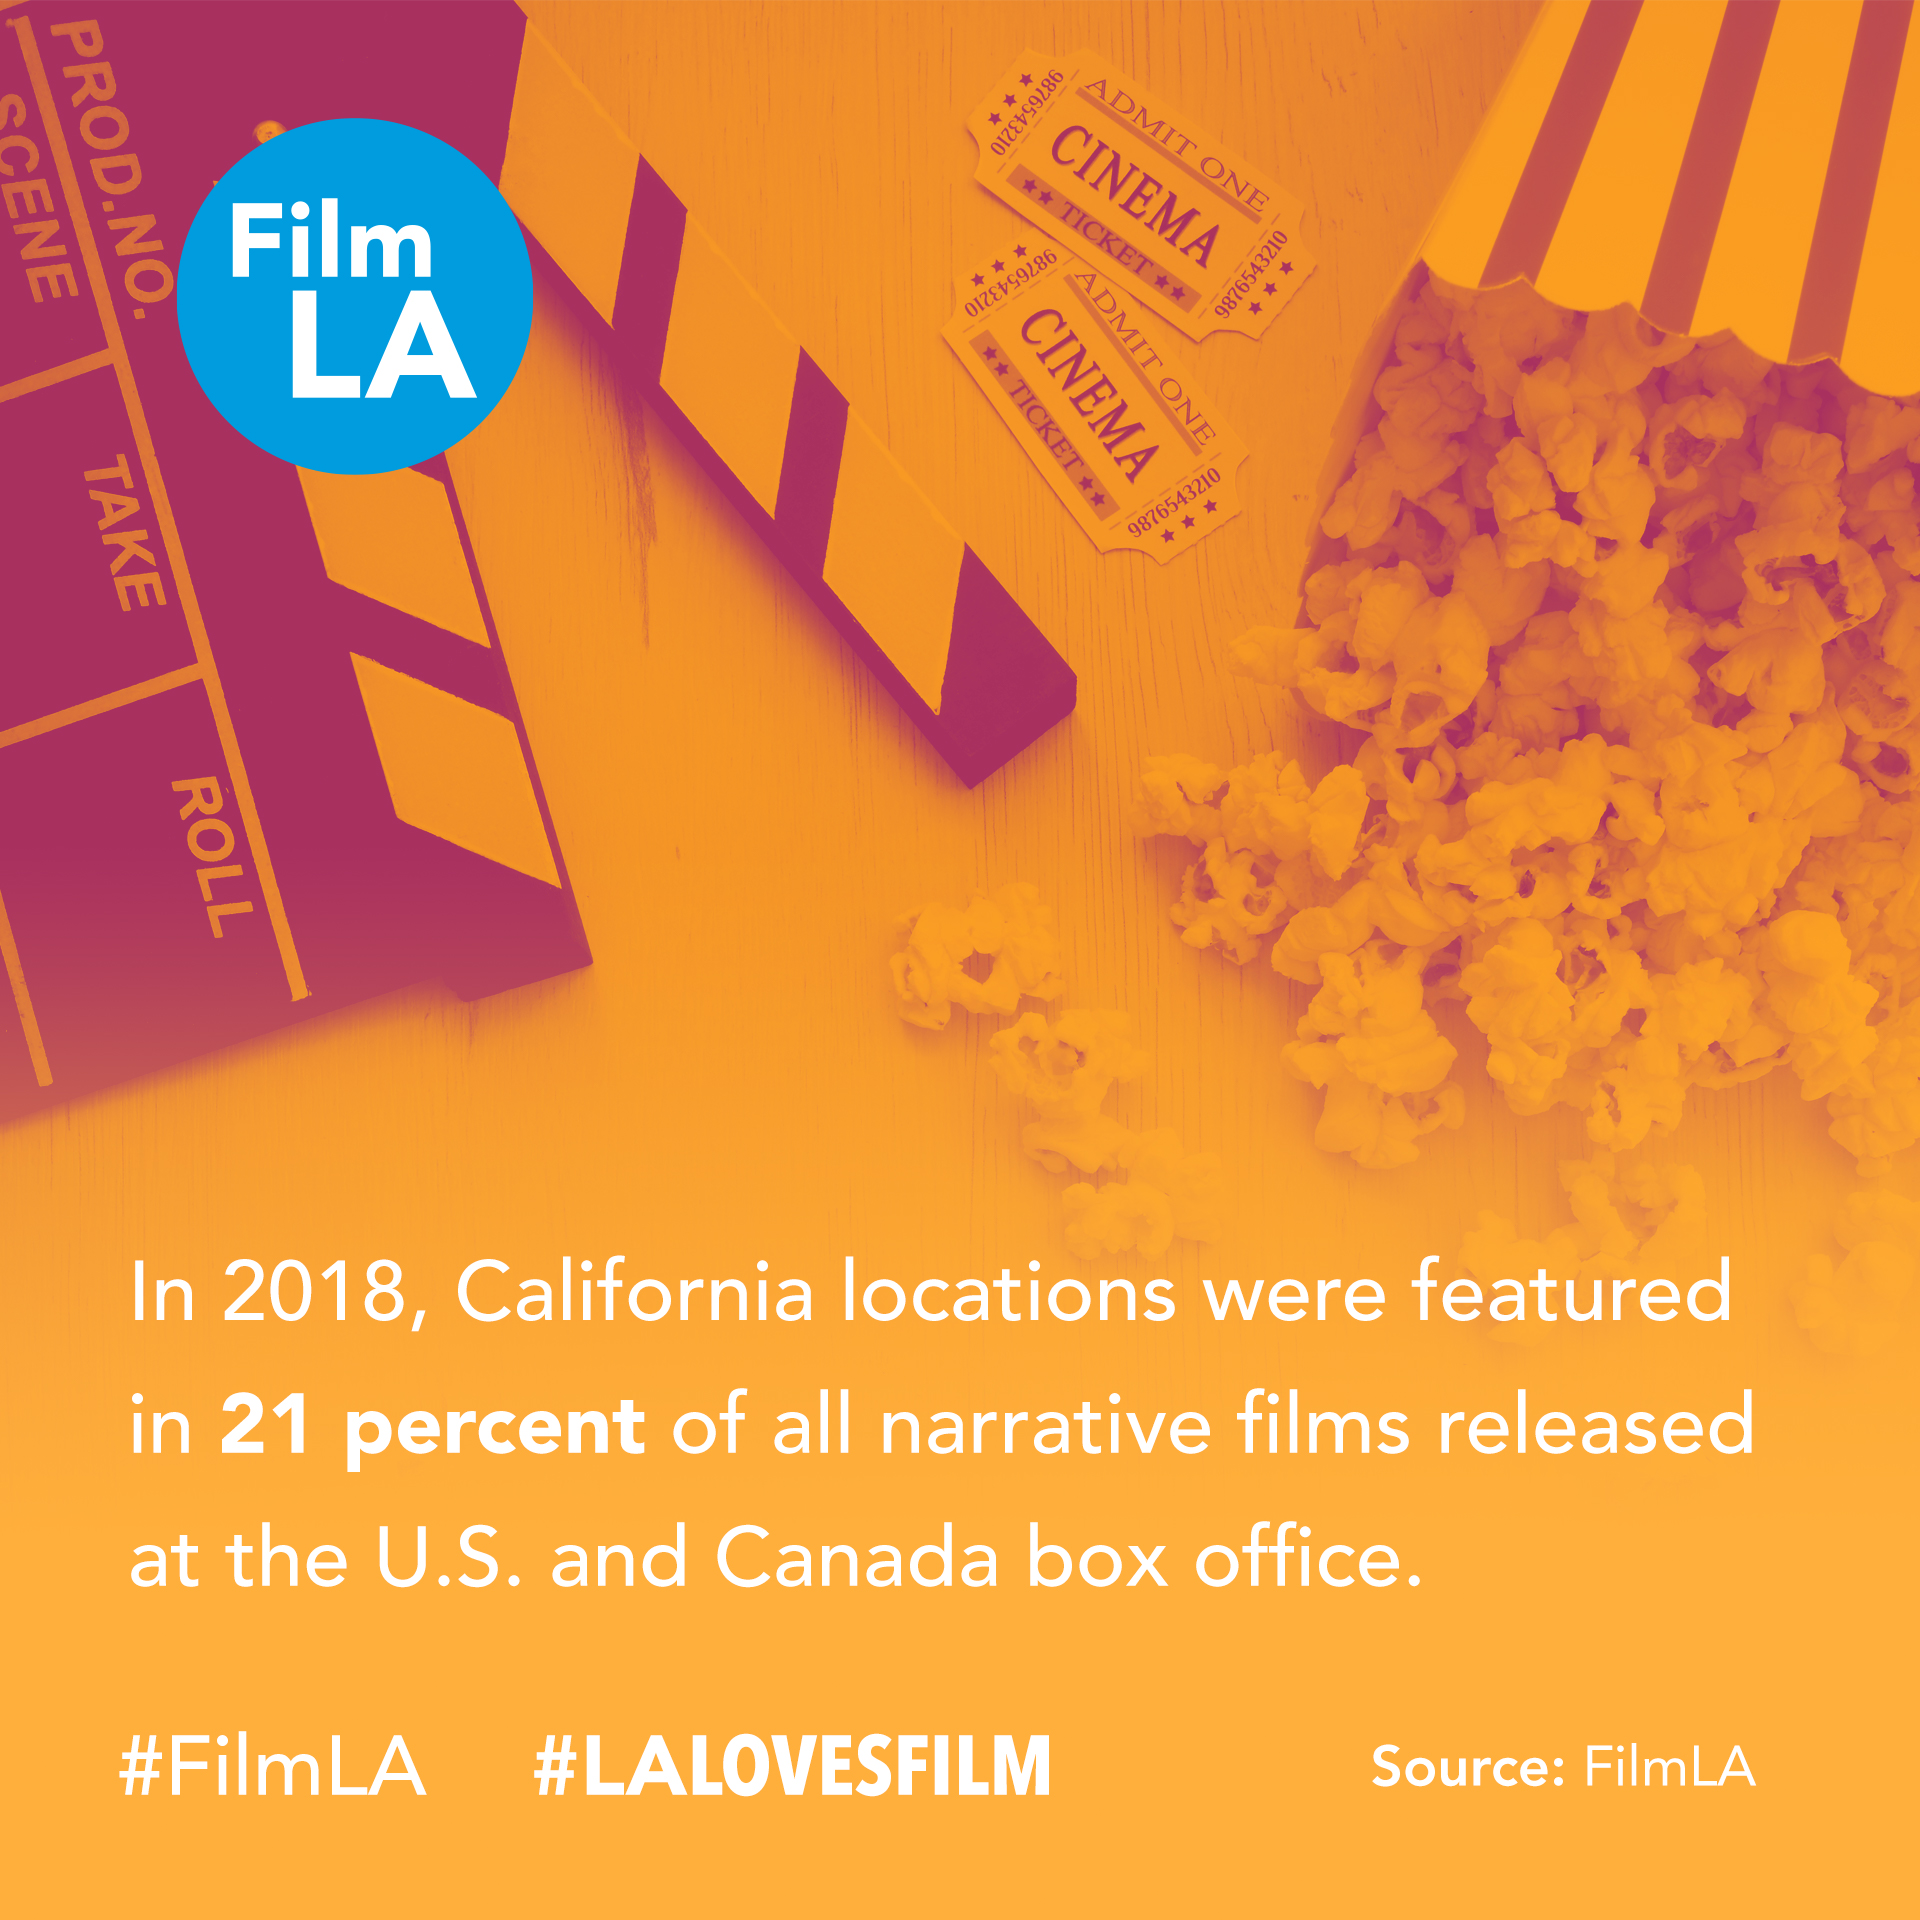 In 2018, California locations were featured in 21% of all narrative films released at the U.S. and Canada box office.